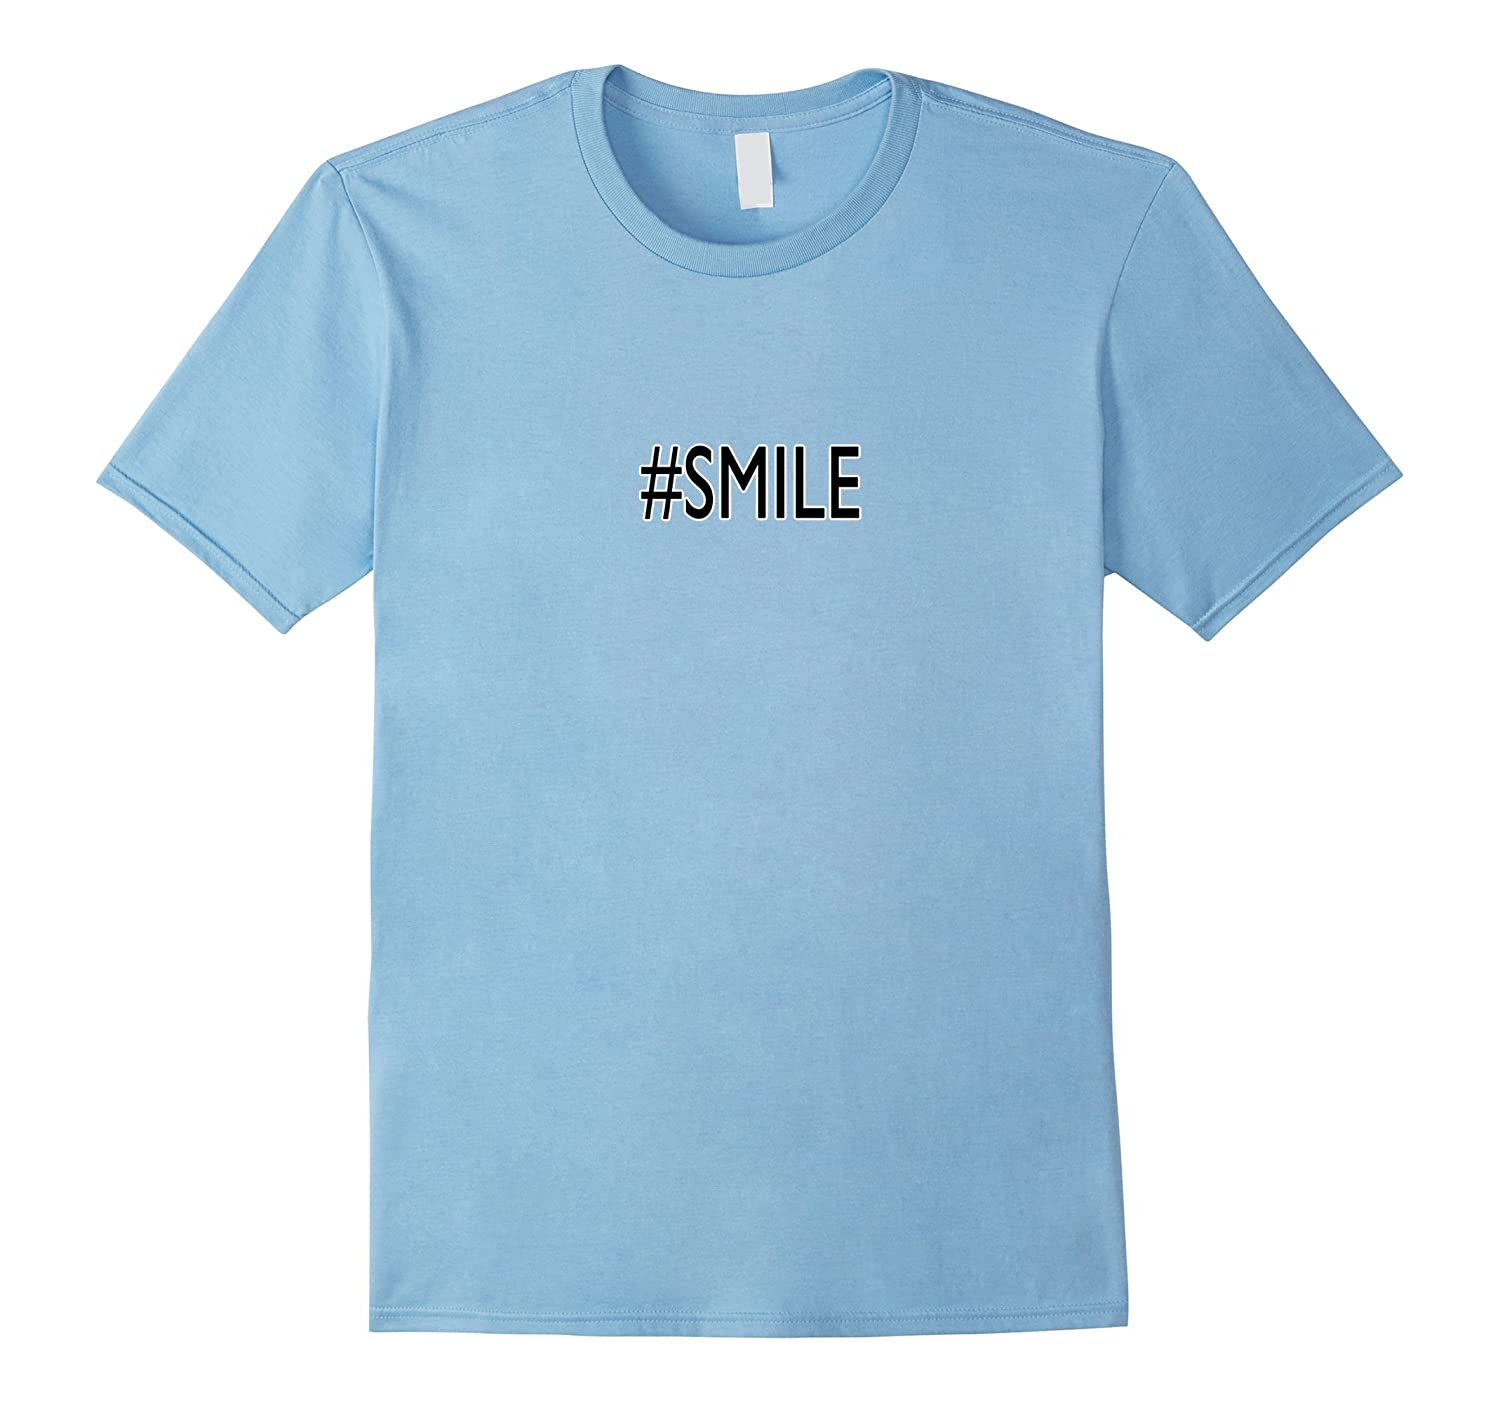 #Smile Shirt SMILE T SHIRT TOP HAPPY PLACE GOOD DAY-Art